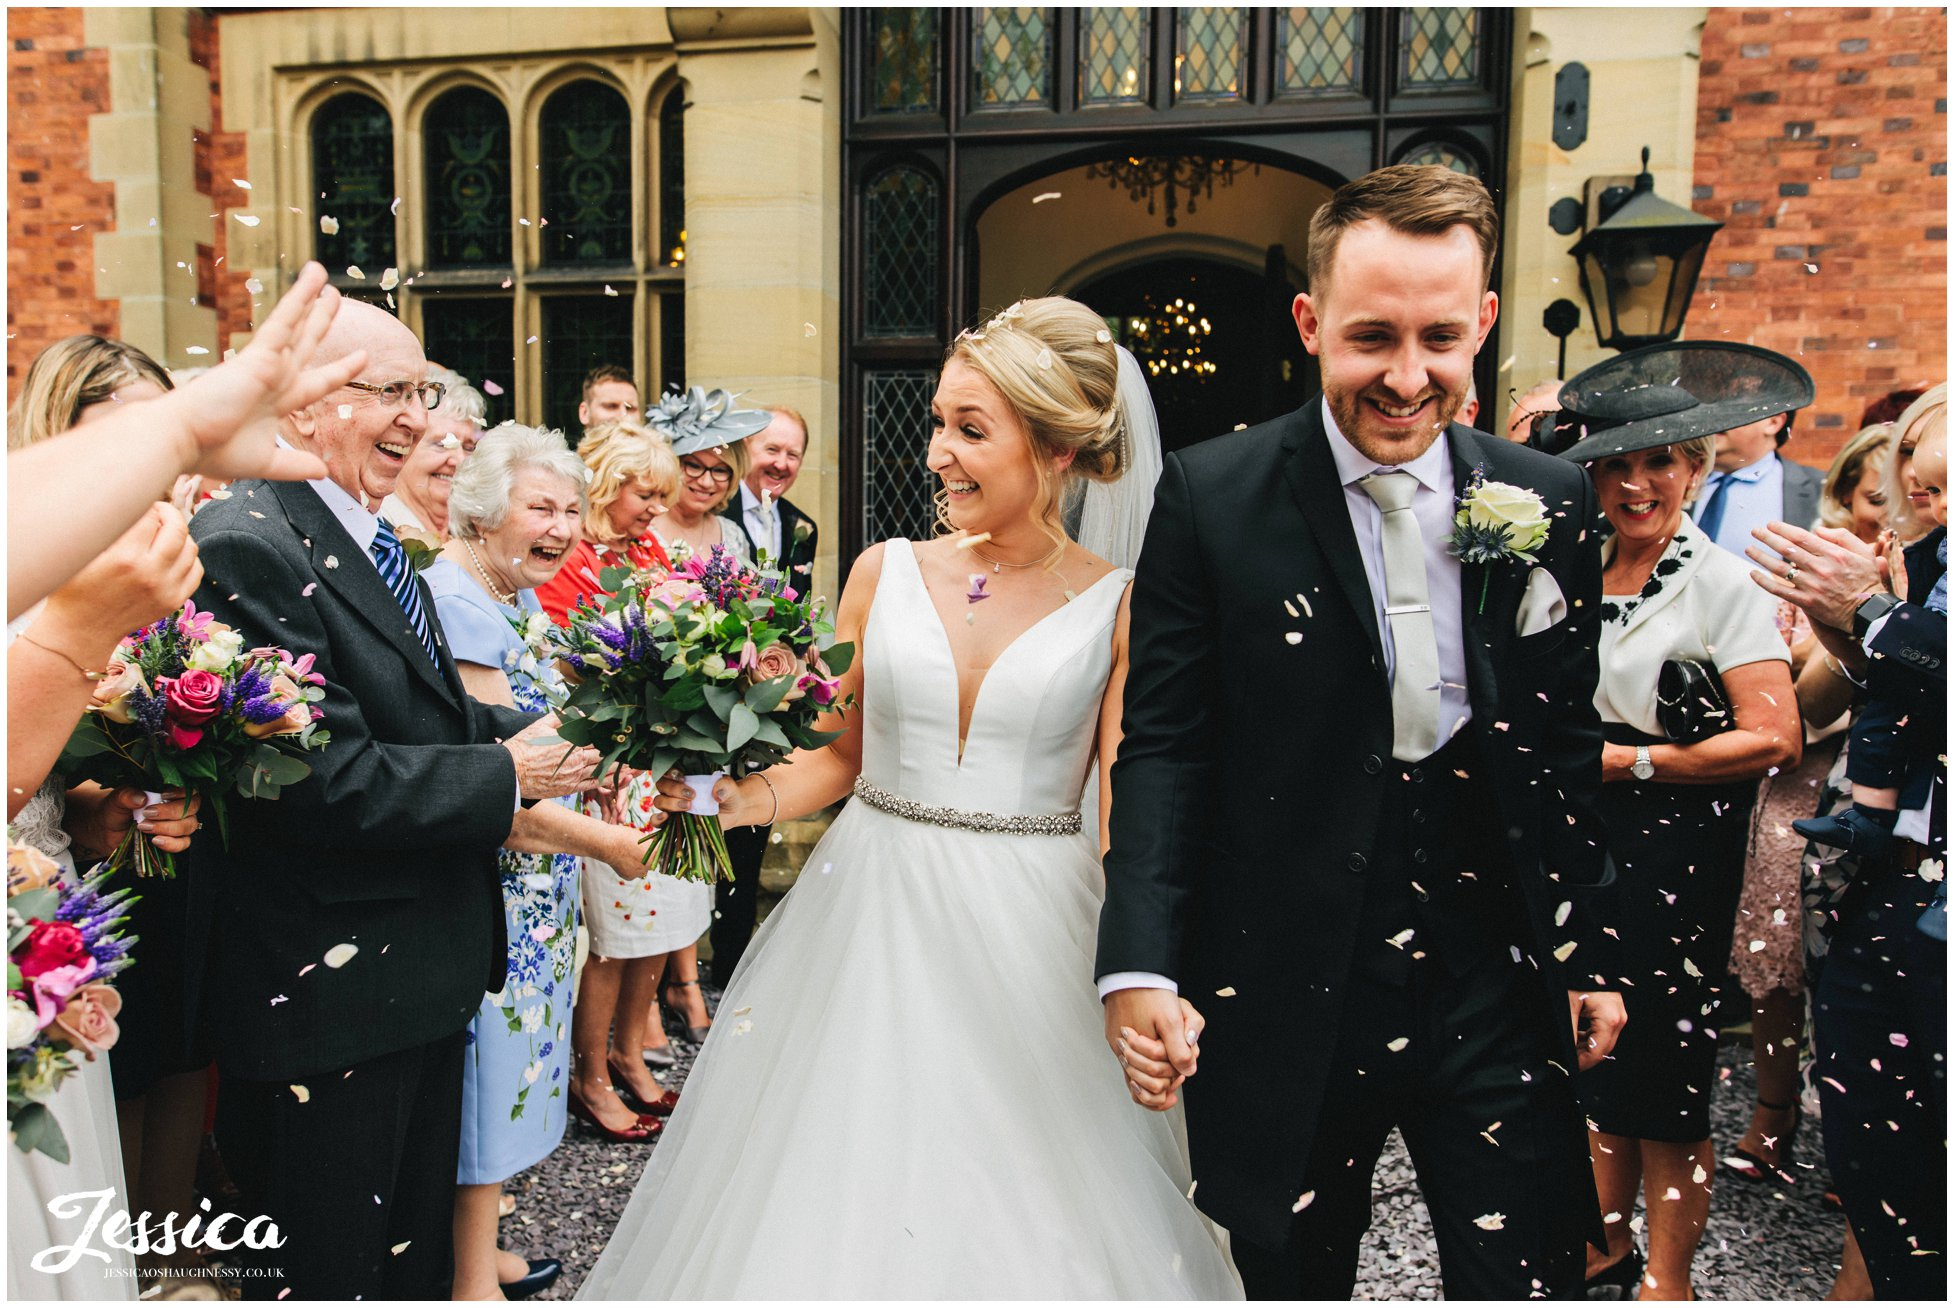 guests throw confetti over the couple